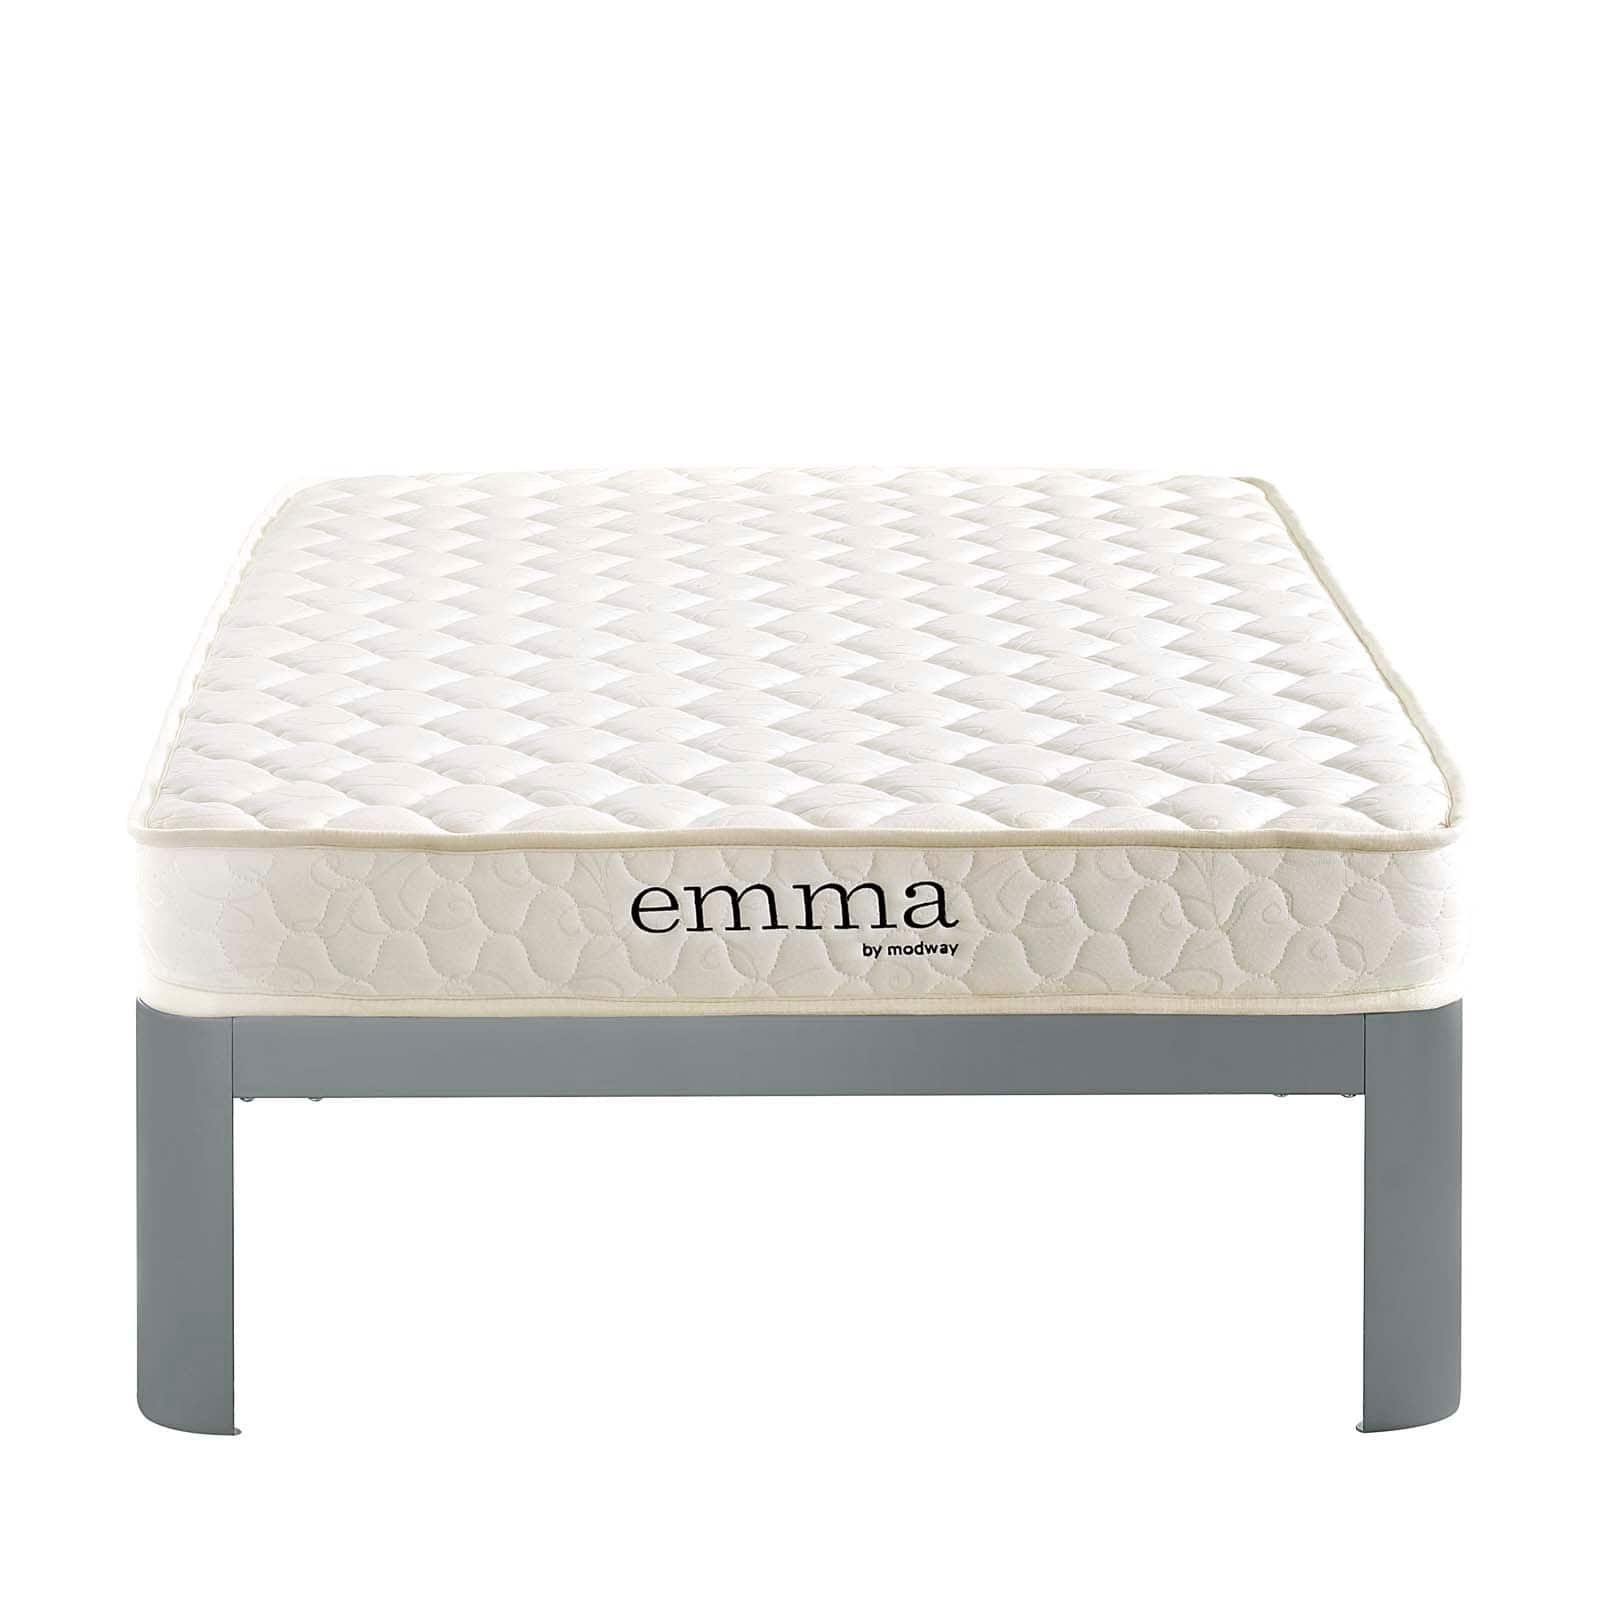 modway emma 6 twin xl mattress black night twin xl mattress twin